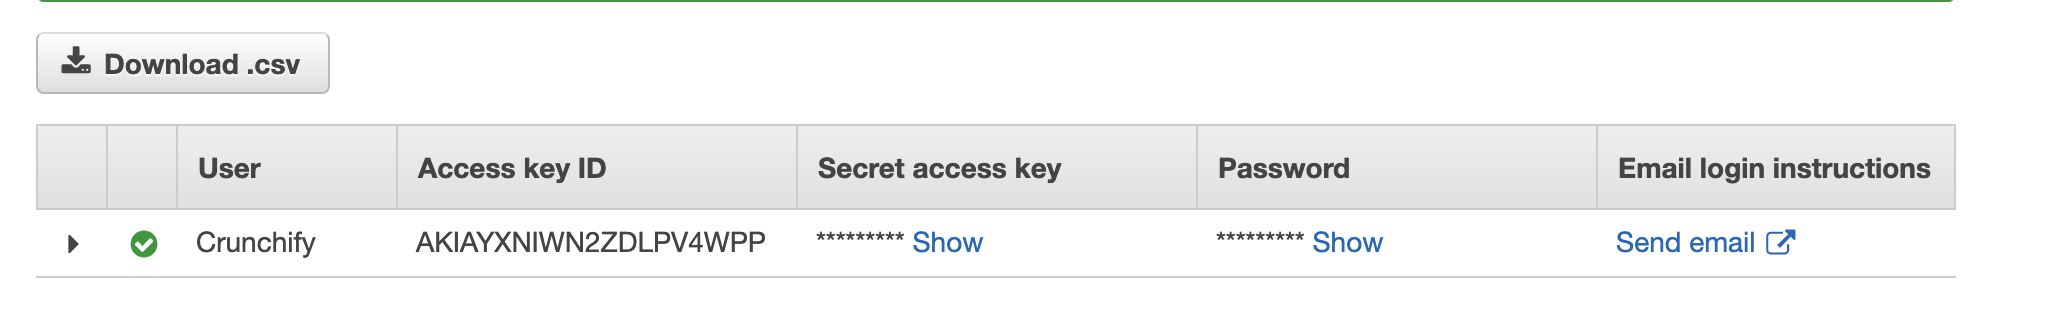 Download Amazon AWS Access Key ID, Secret Access Key